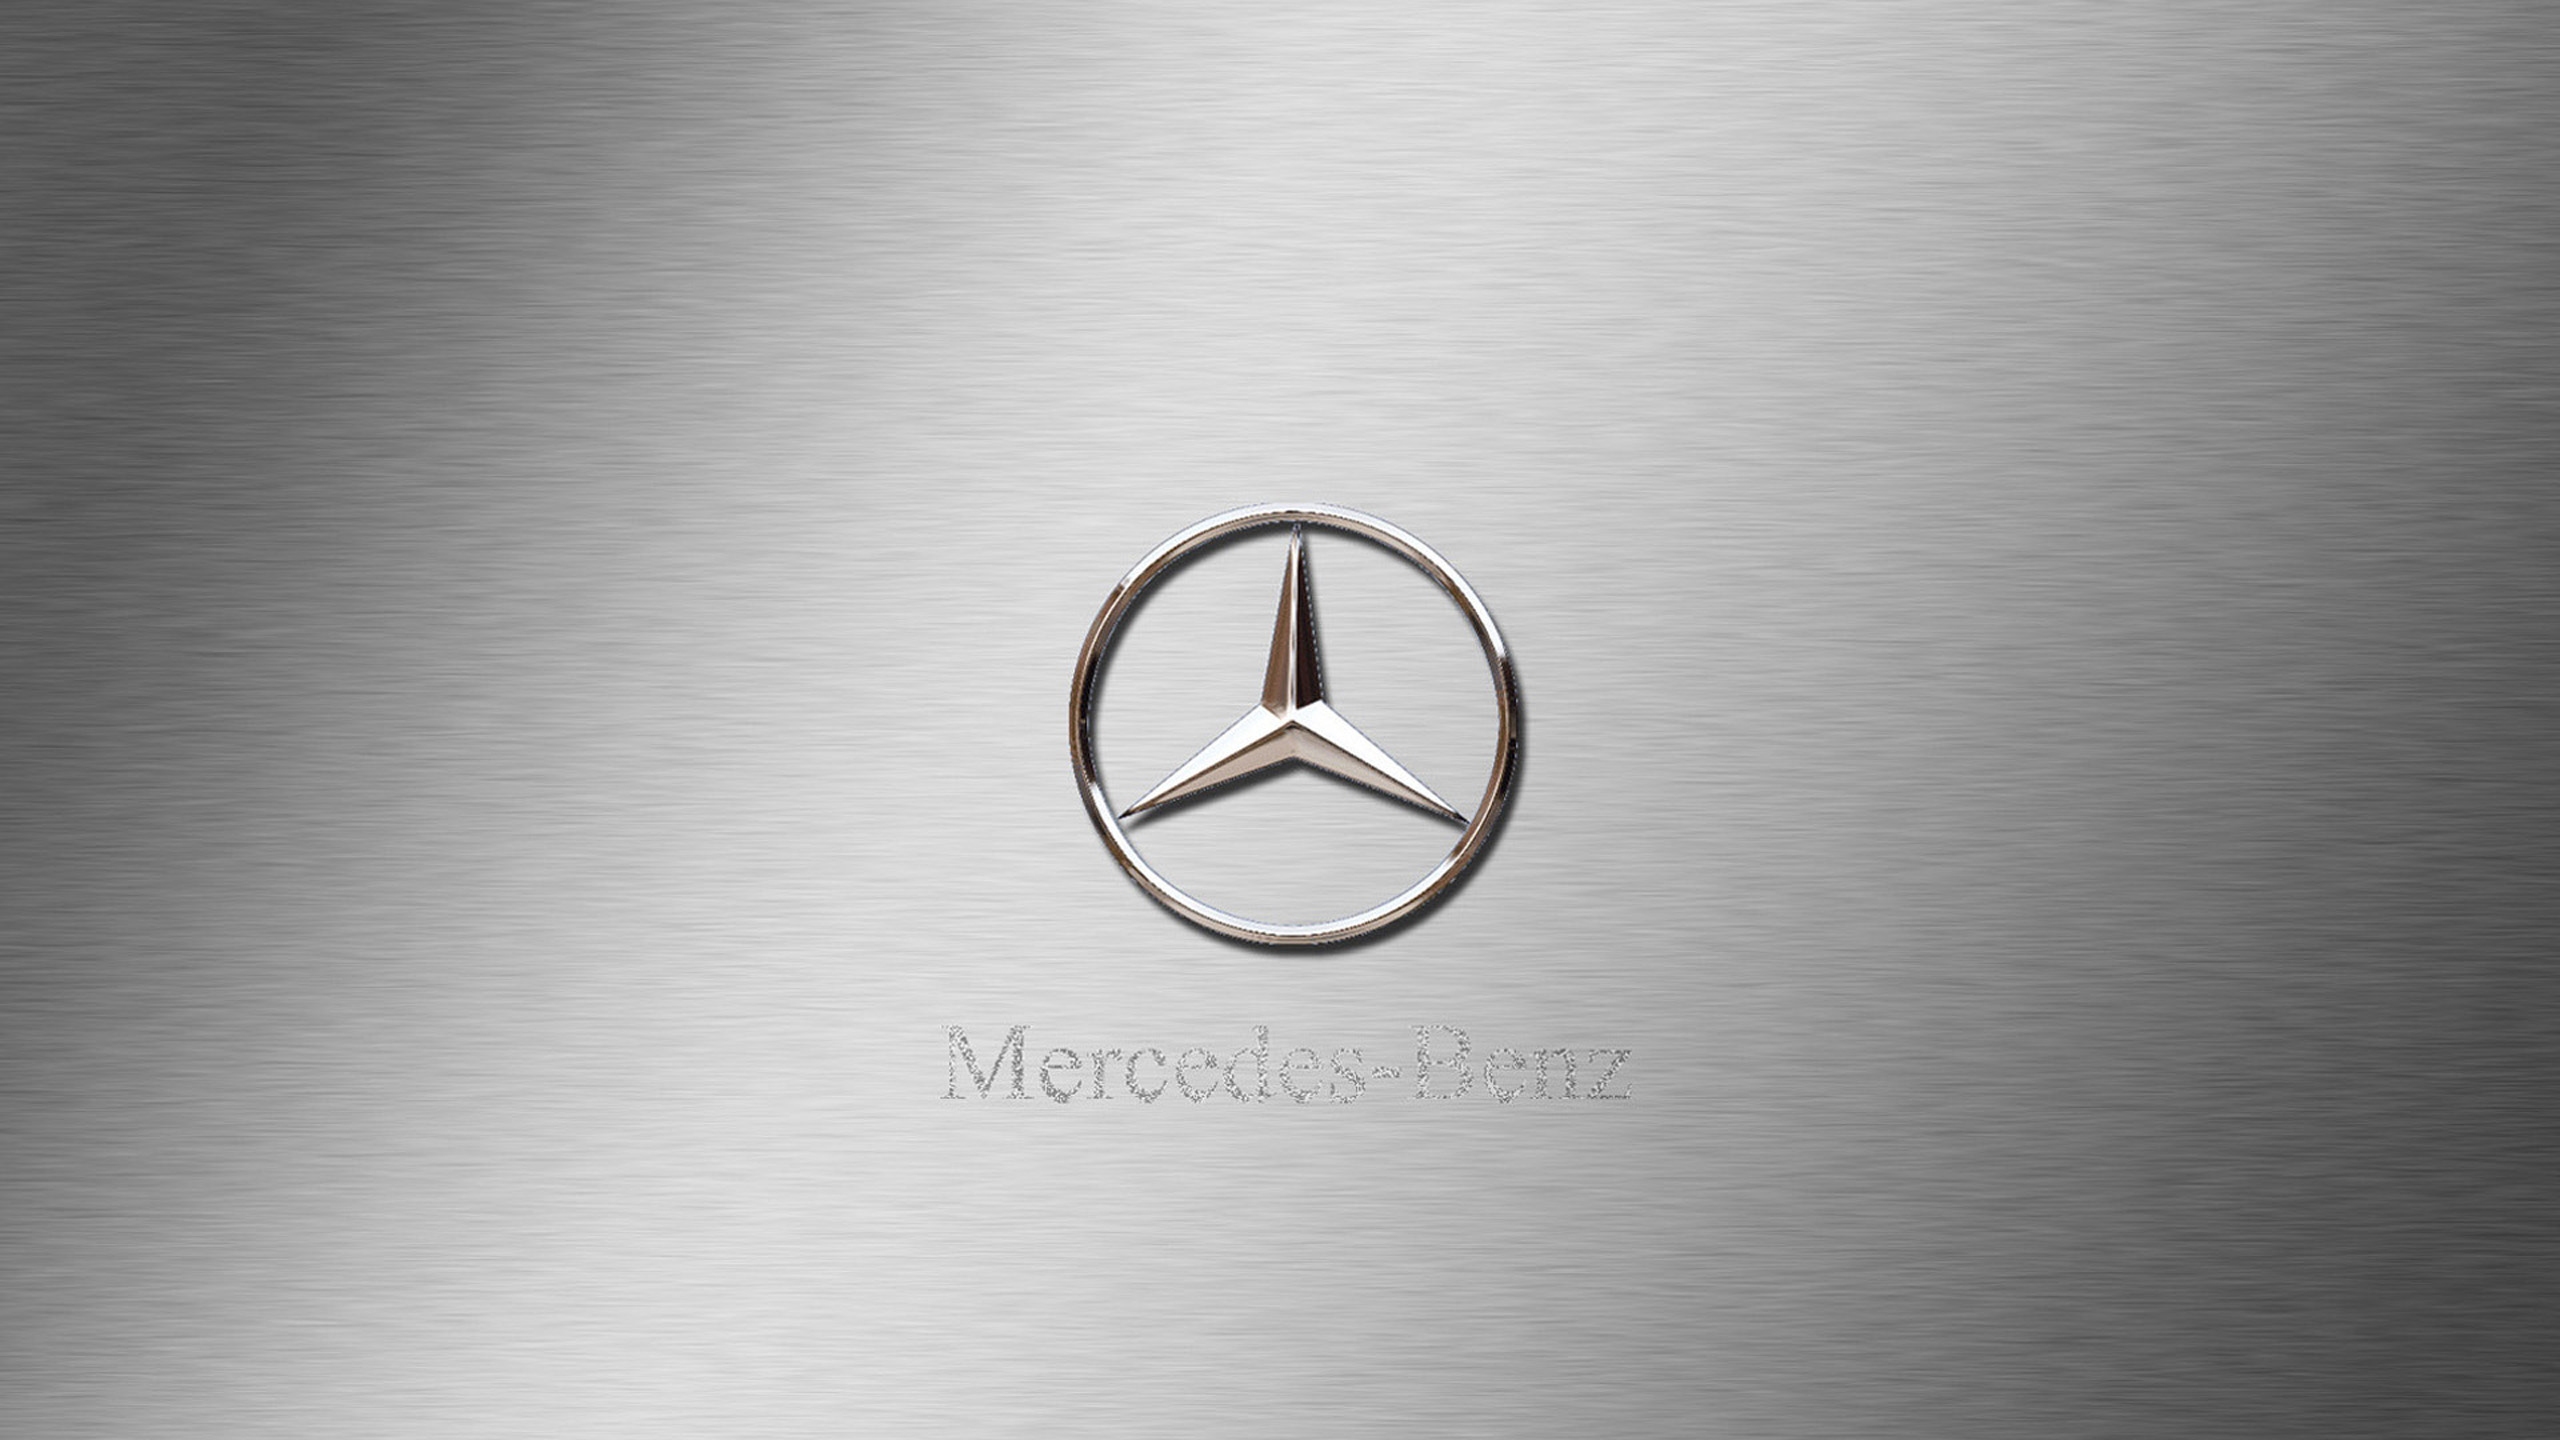 Mercedes Benz Logo Wallpapers Pictures Images 2560x1440